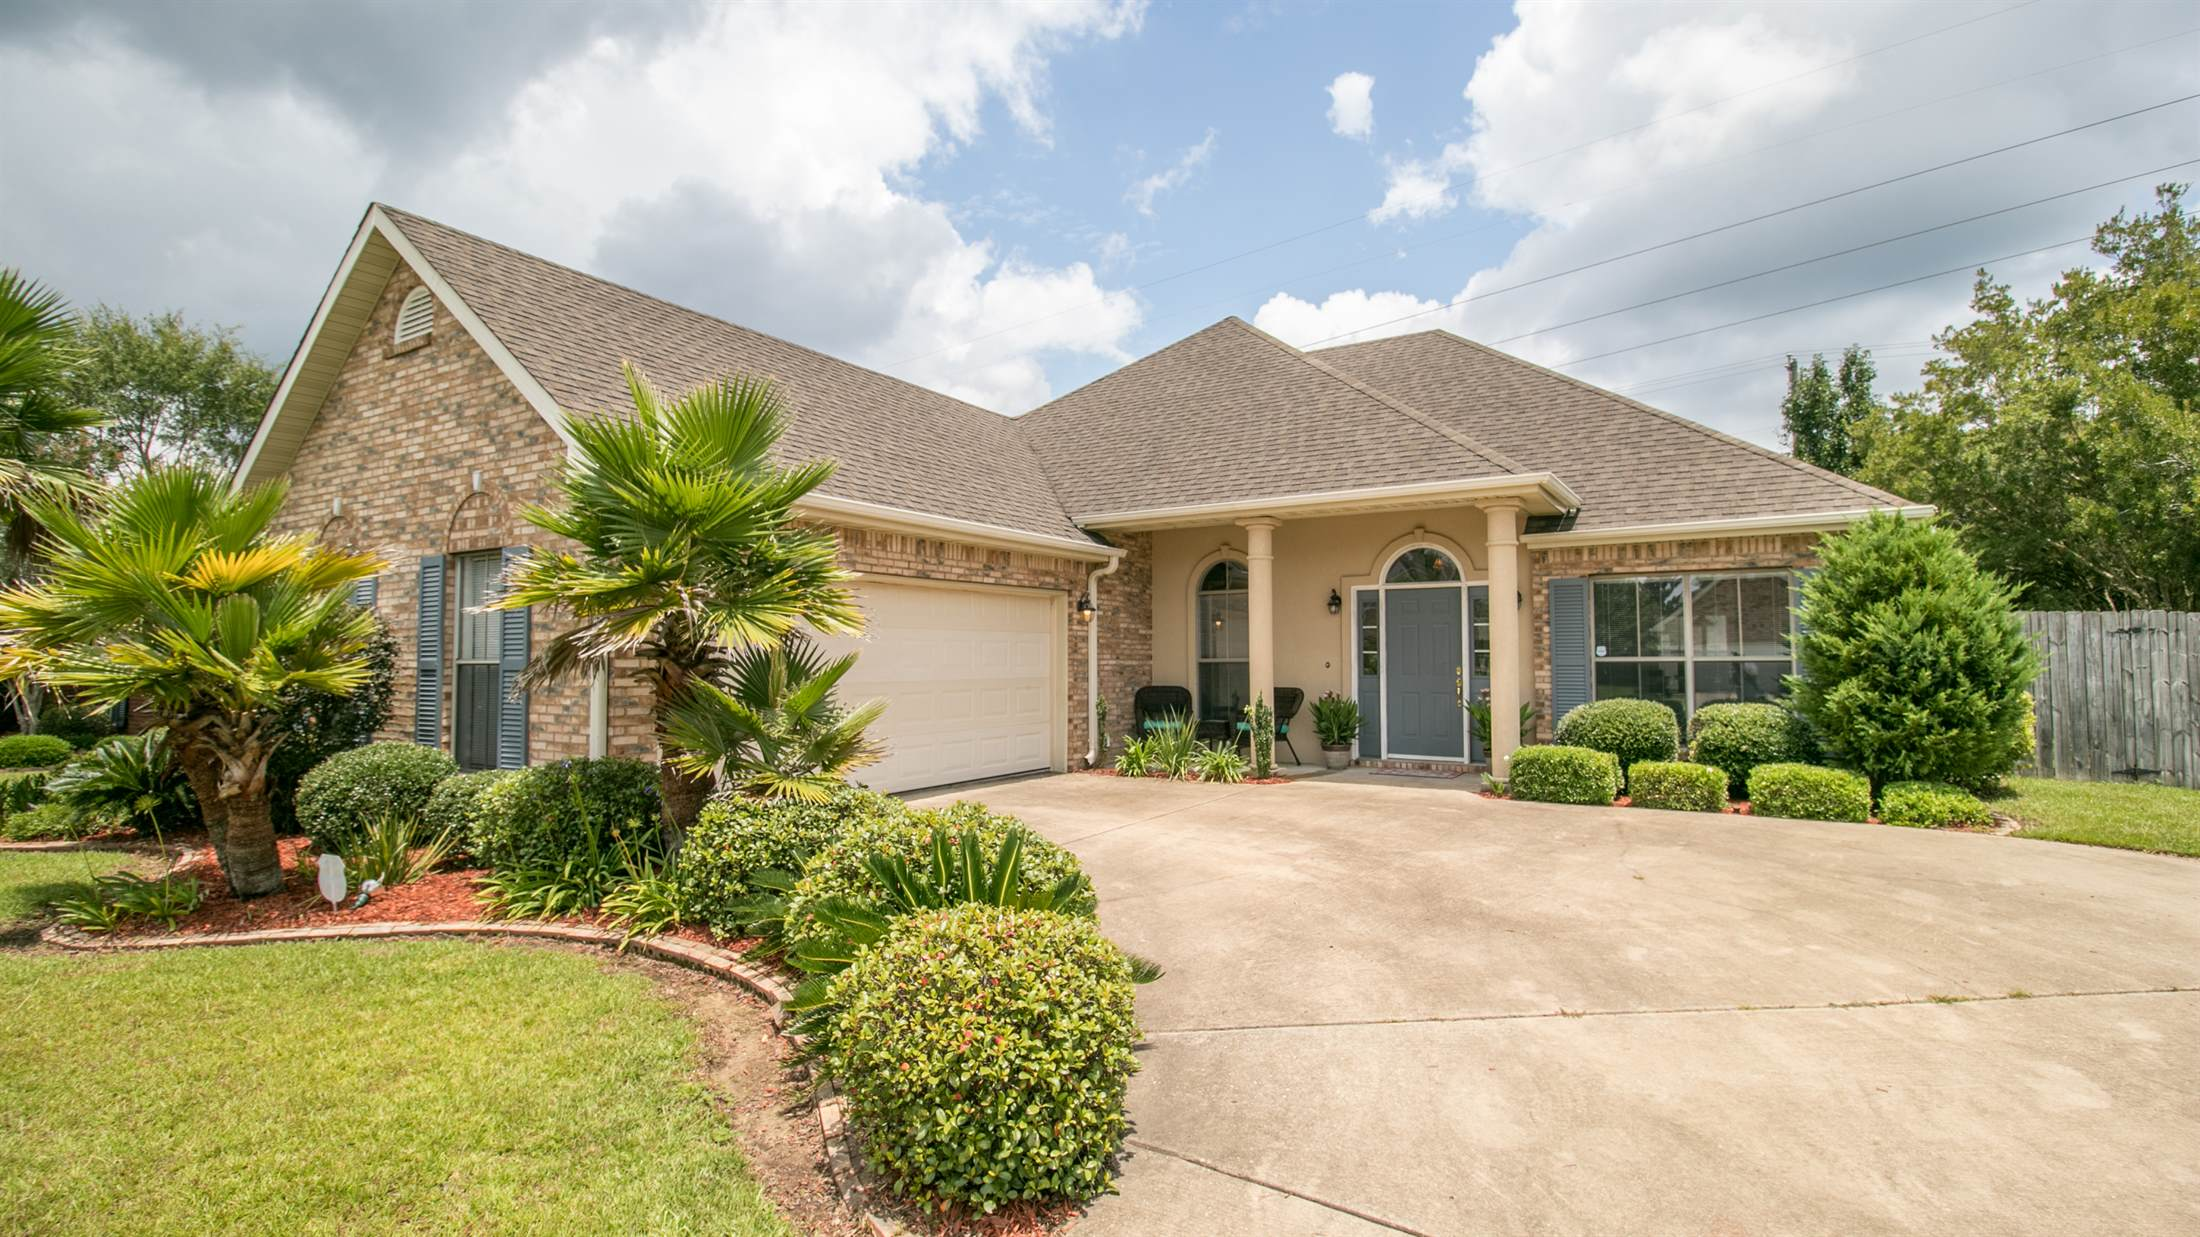 15392 Summerfield Dr, Gulfport, MS 39503